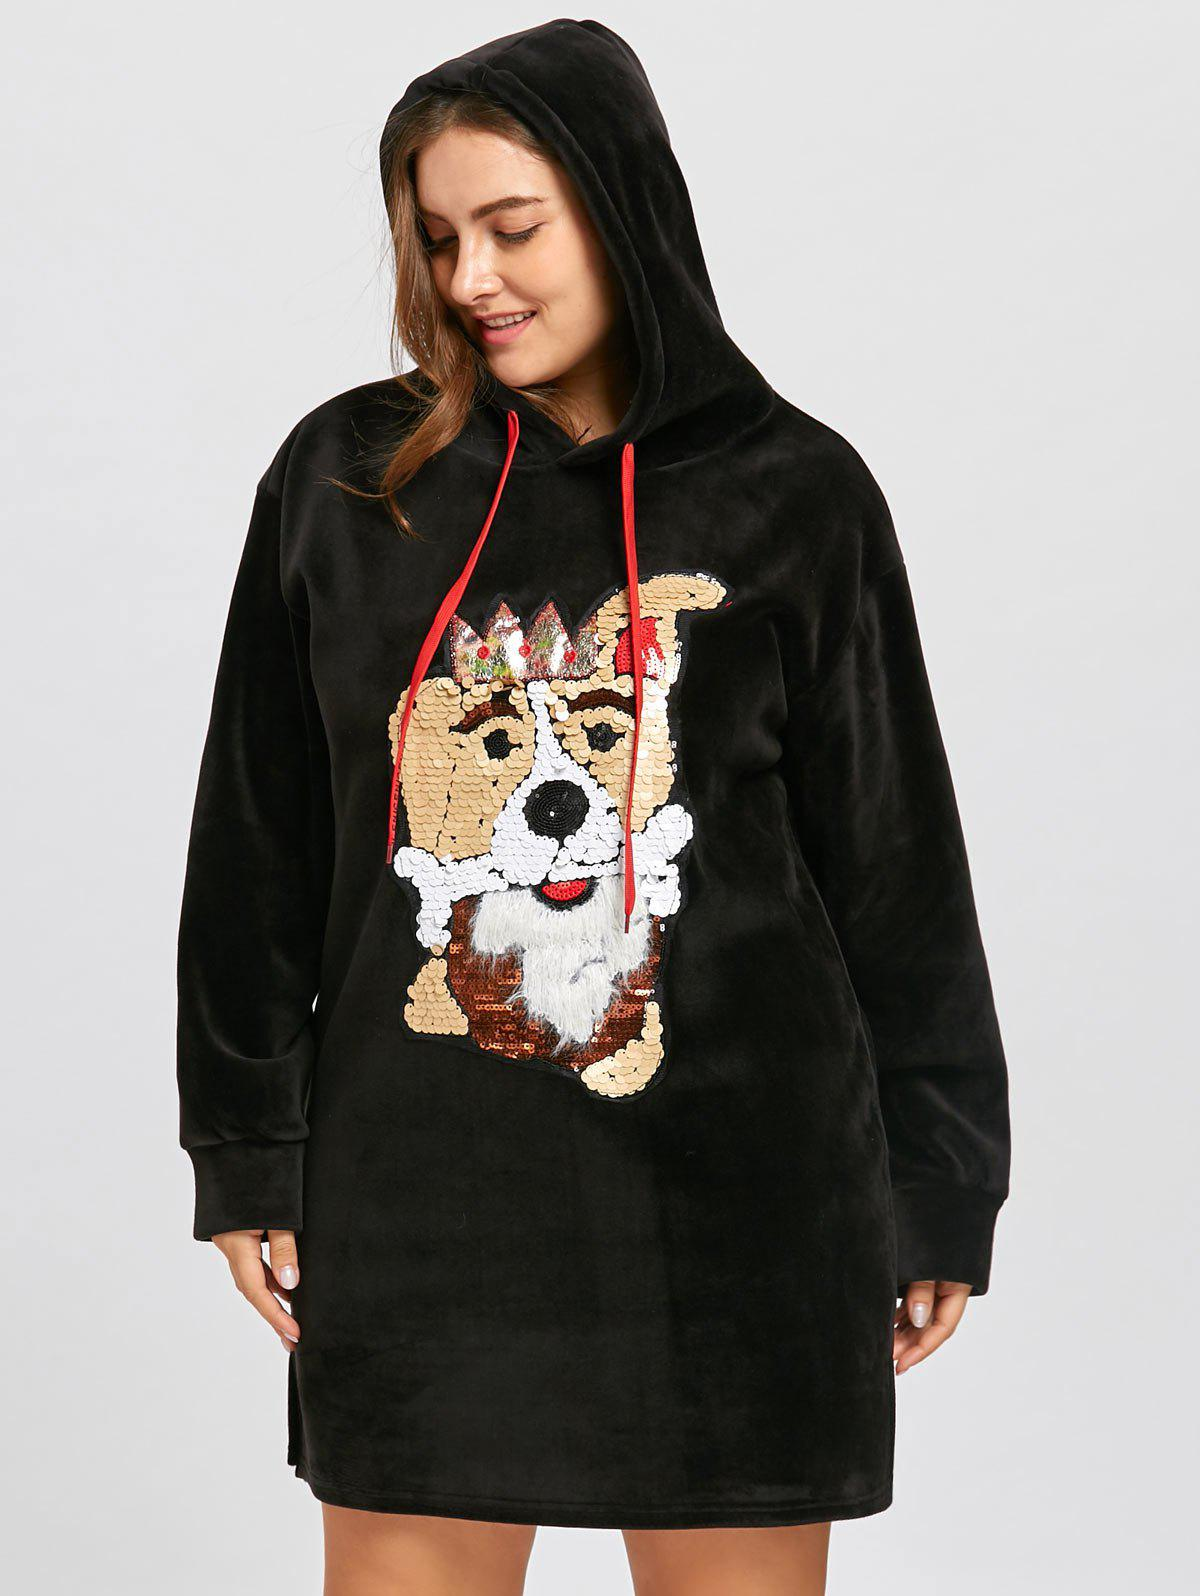 plus size sequined puppy fleece tunic hoodie dress, black, one